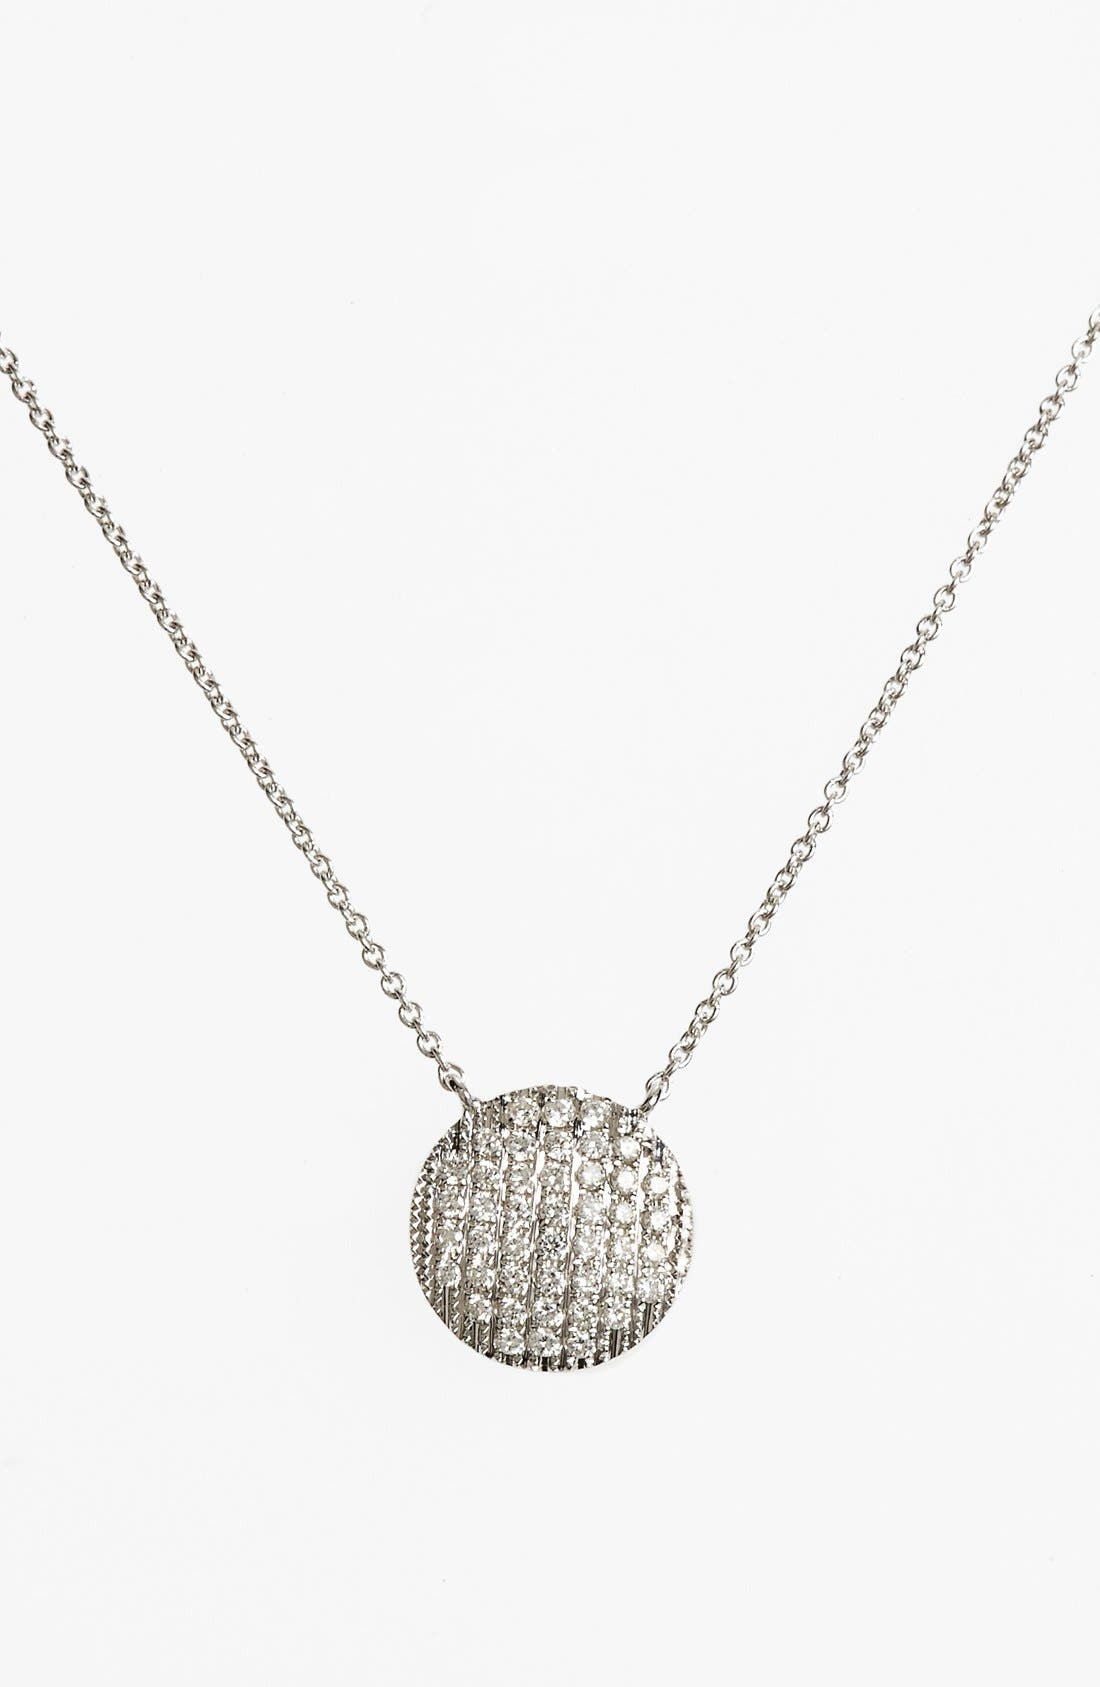 'Lauren Joy' Diamond Disc Pendant Necklace,                         Main,                         color, White Gold